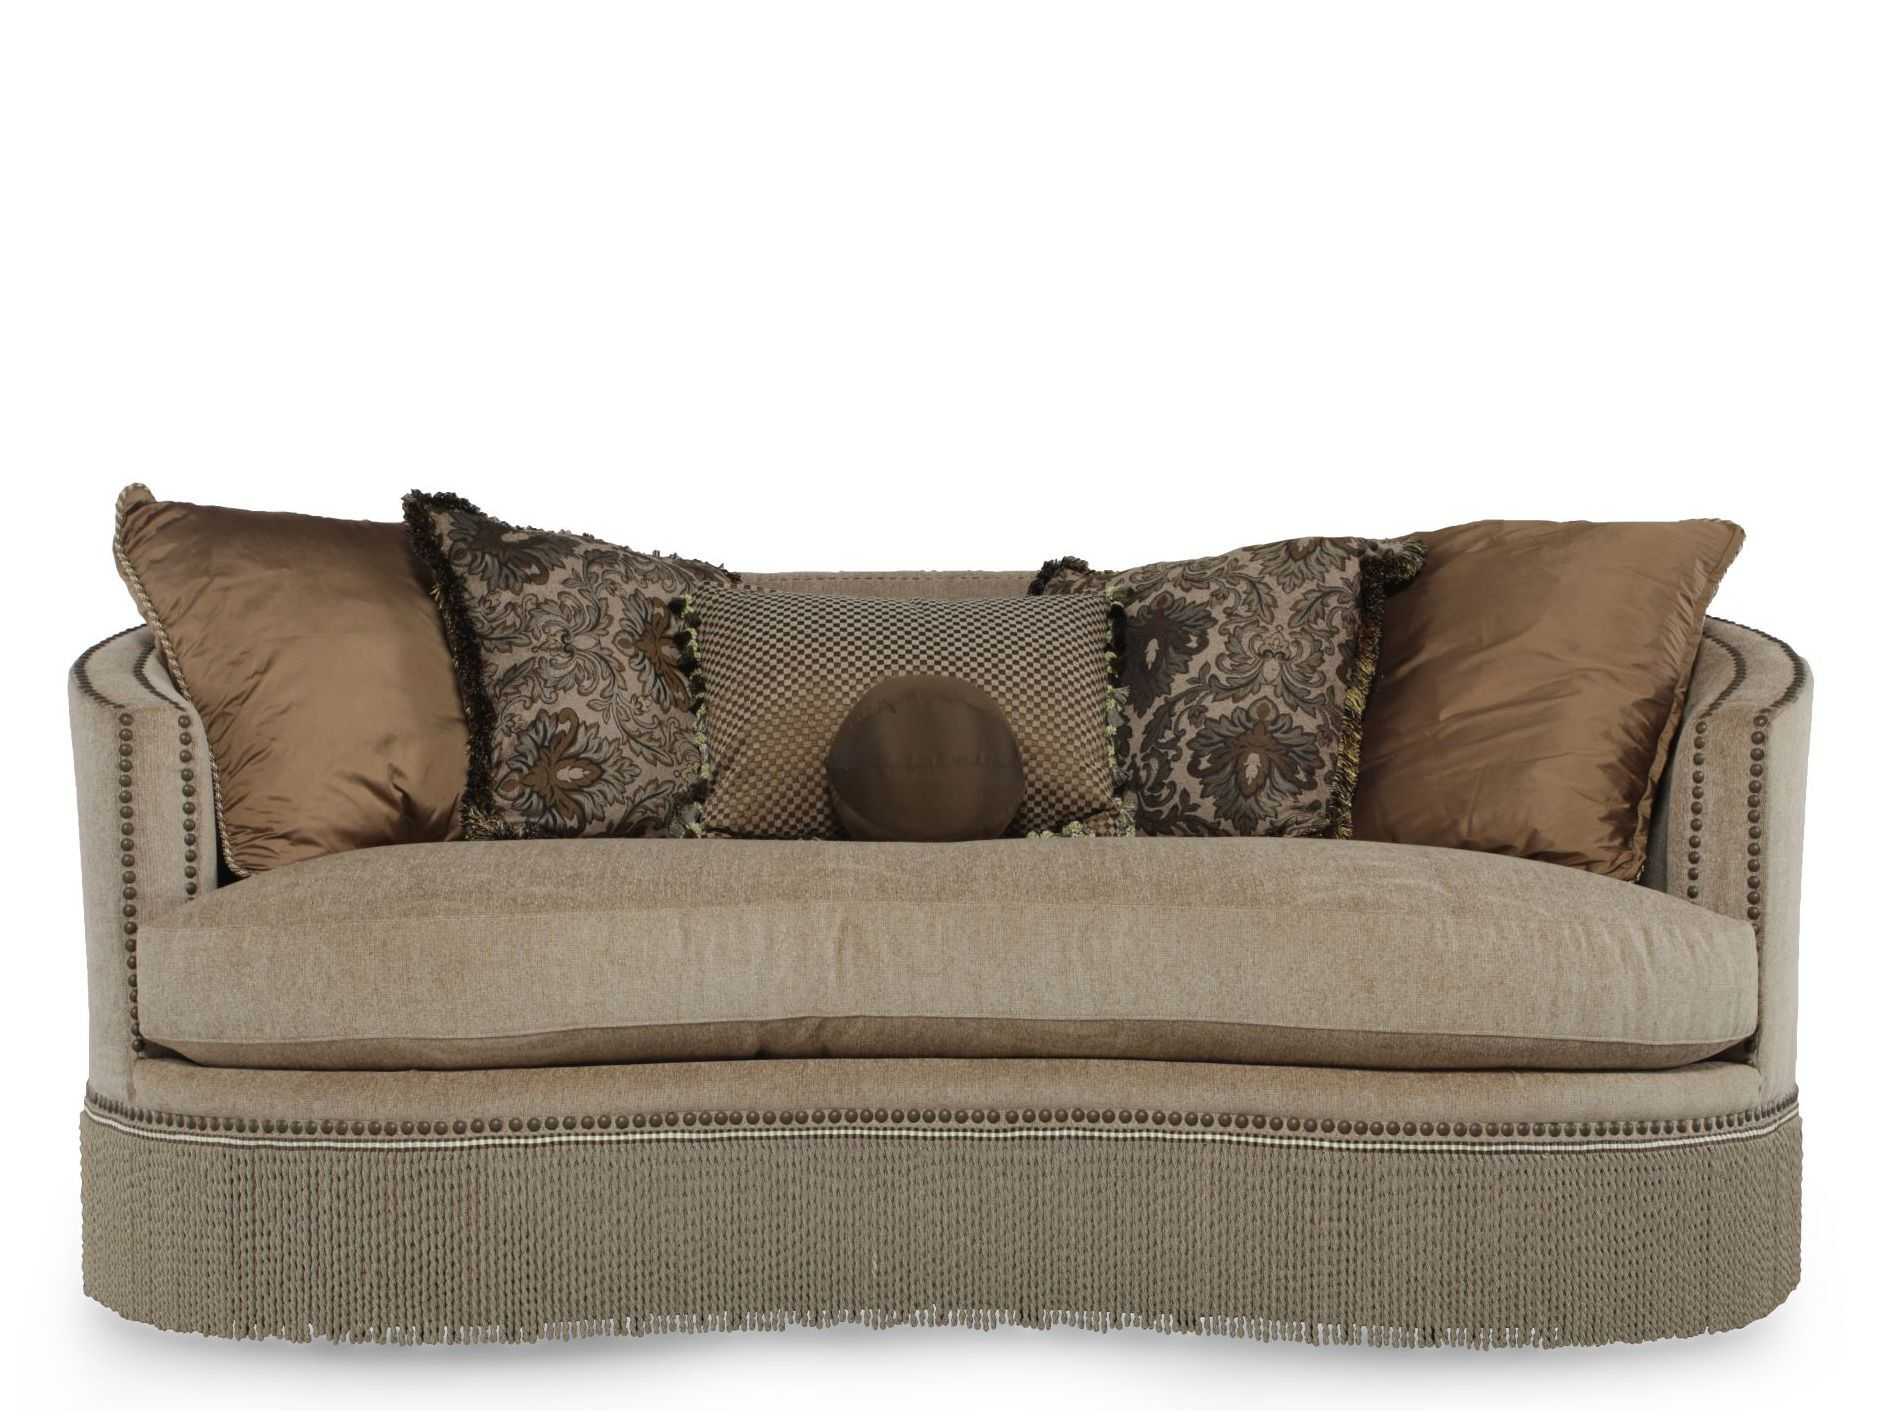 Attractive Rachlin Classics Furniture Mathis Brothers